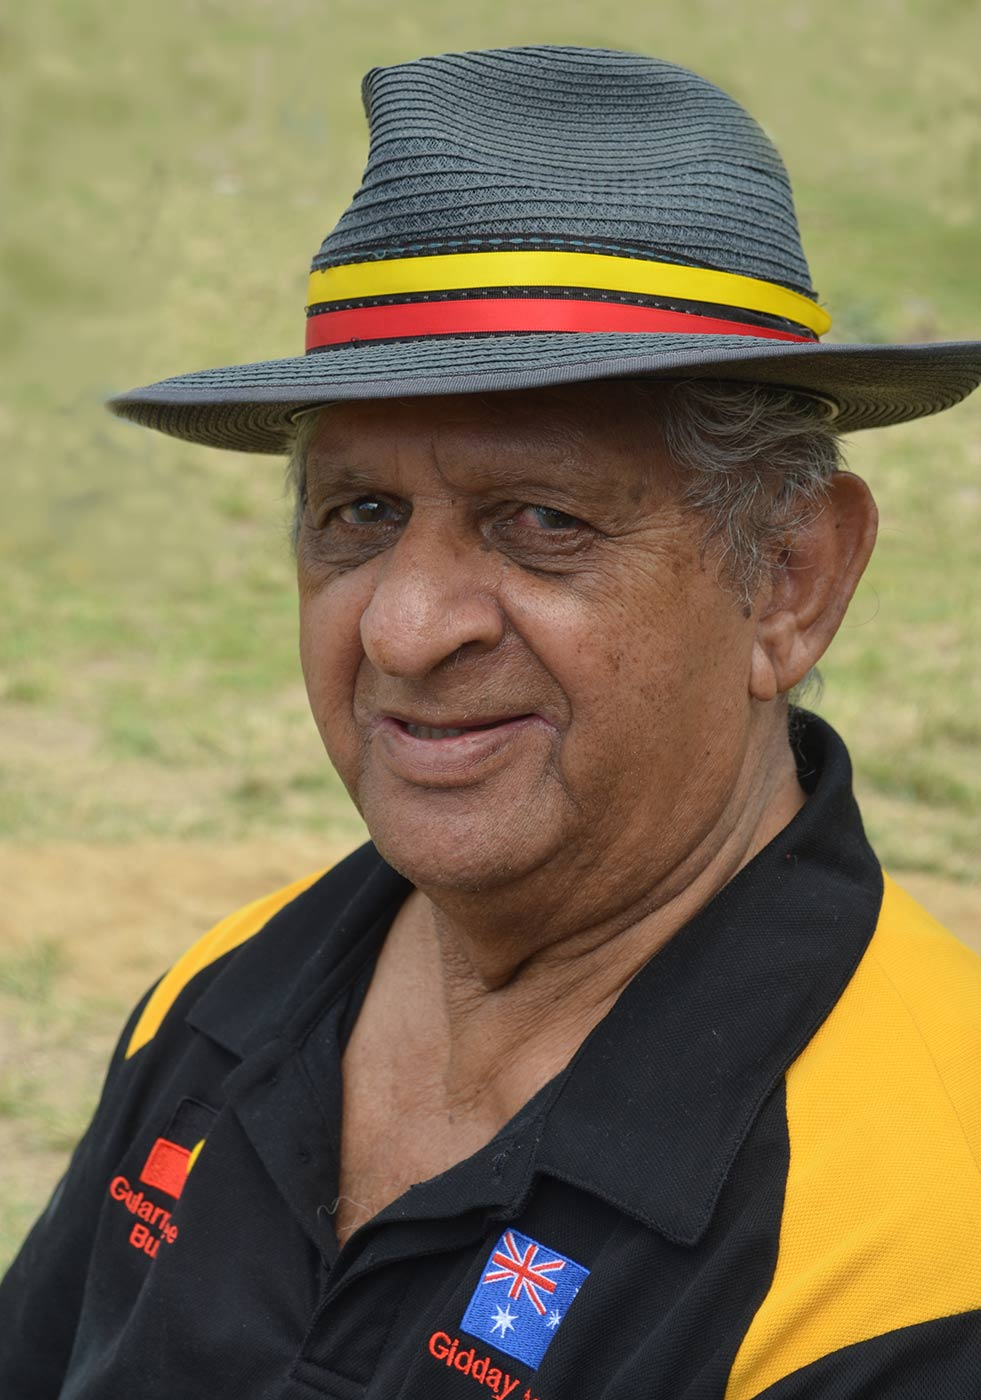 Portrait of an elderly man wearing a Fedora hat with a yellow and red stripe. - click to view larger image